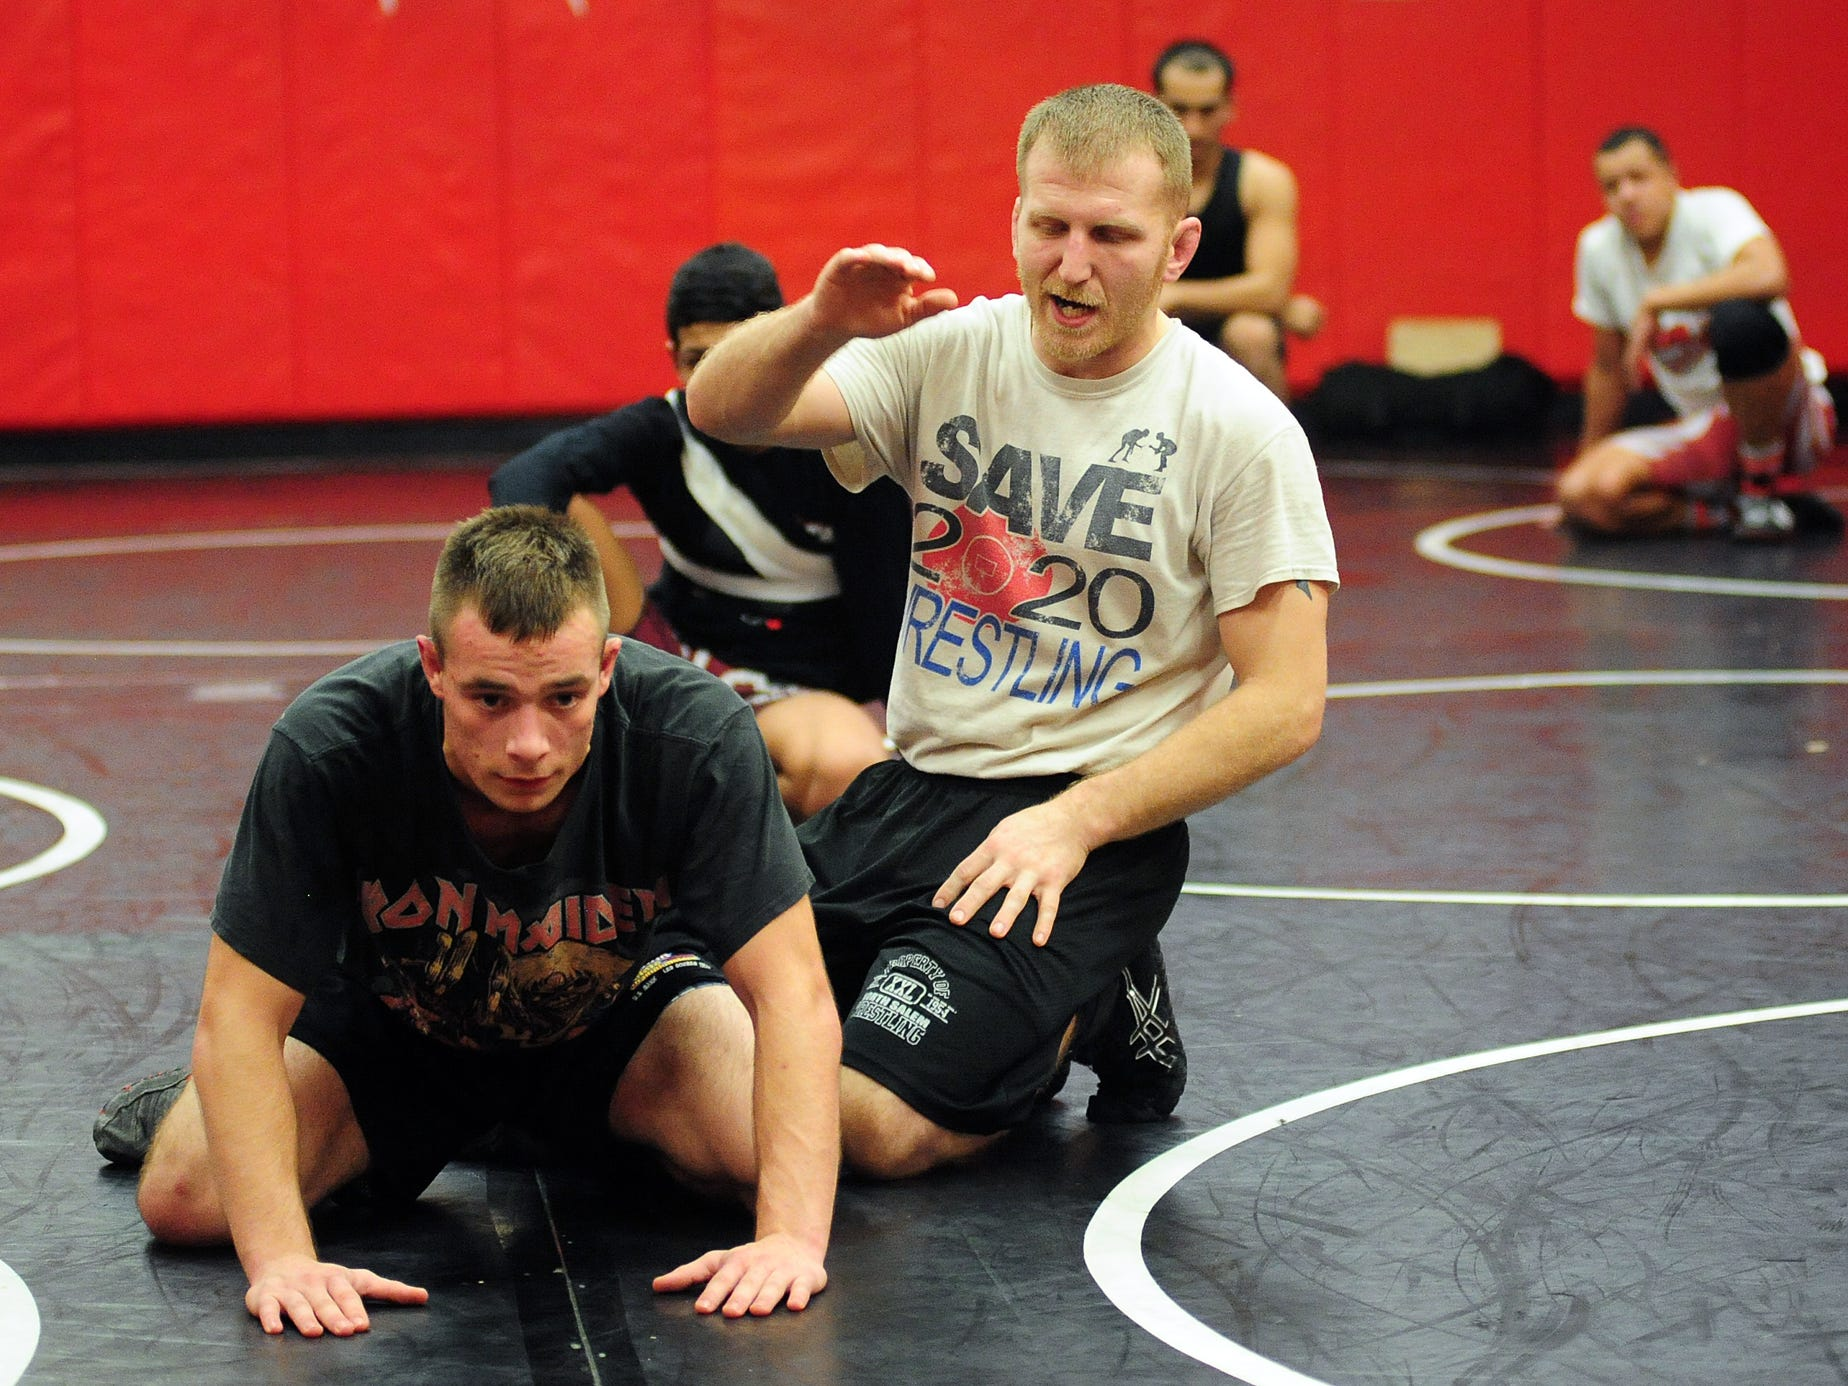 North Salem head wrestling coach Andy Pickett talks to his wrestlers during practice at the school on Monday, December 15, 2014.